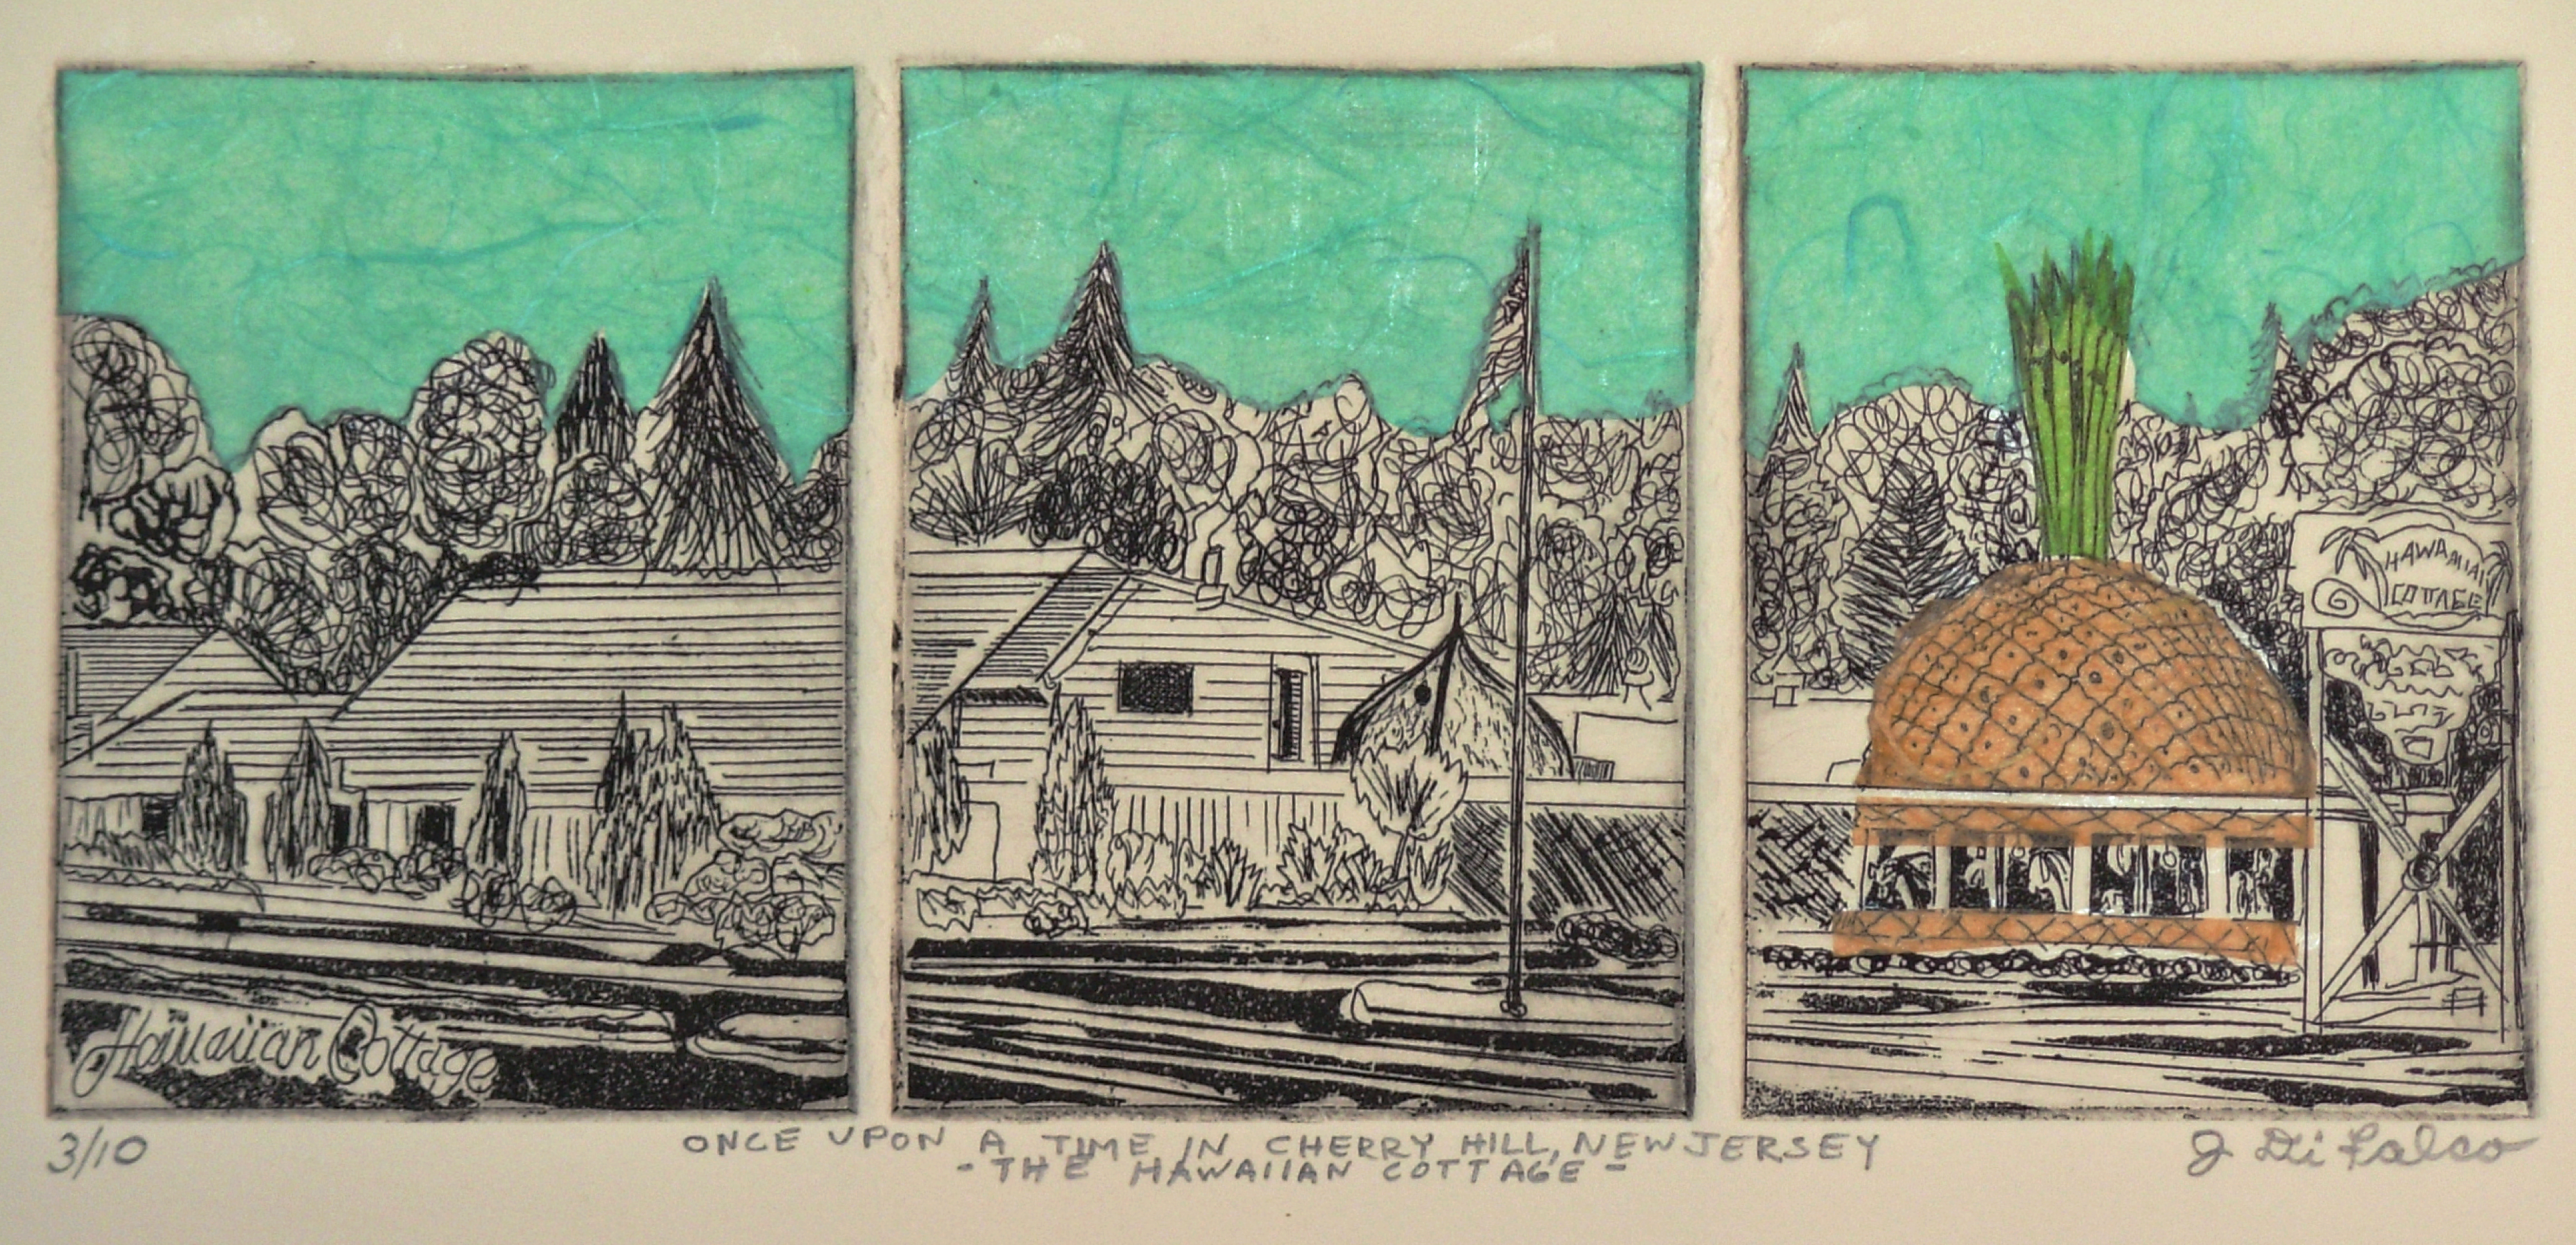 Jerry  Di Falco Artwork ONCE UPON A TIME IN CHERRY HIL NEW JERSEY OR THE HAWAIIAN COTTAGE, 2014 Etching, Americana